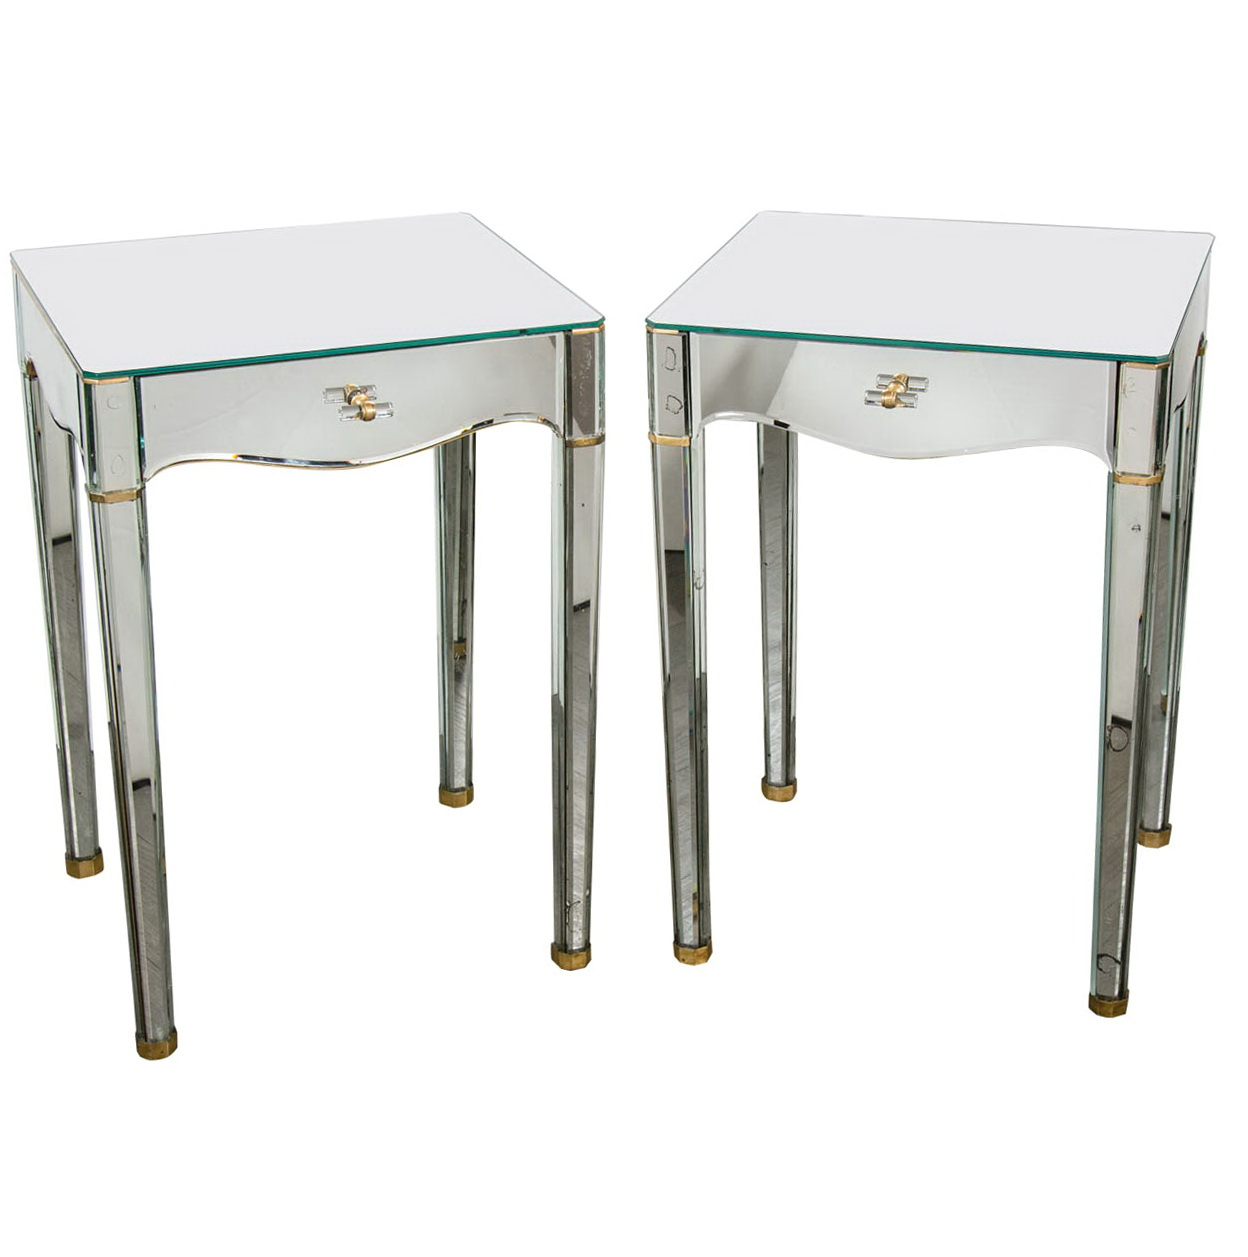 Mirrored End Tables Nightstands Home Design Ideas